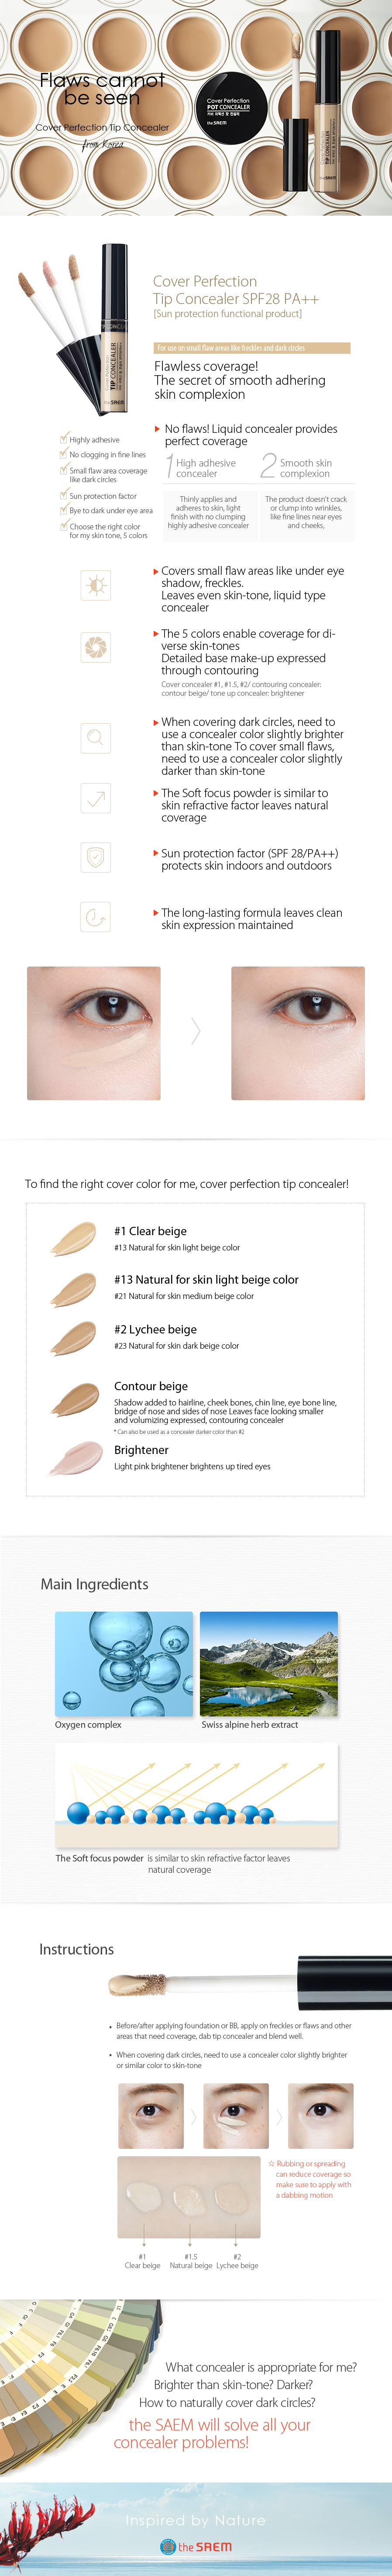 the-SAEM-Cover-Perfection-Tip-Concealer-6-8g-Beige-Made-in-Korea the-SAEM-Cover-Perfection-Tip-Concealer-6-8g-Beige-Made-in-Korea the-SAEM-Cover-Perfection-Tip-Concealer-6-8g-Beige-Made-in-Korea the-SAEM-Cover-Perfection-Tip-Concealer-6-8g-Beige-Made-in-Korea [the SAEM] Cover Perfection Tip Concealer 6.8g, Beige Made in Korea